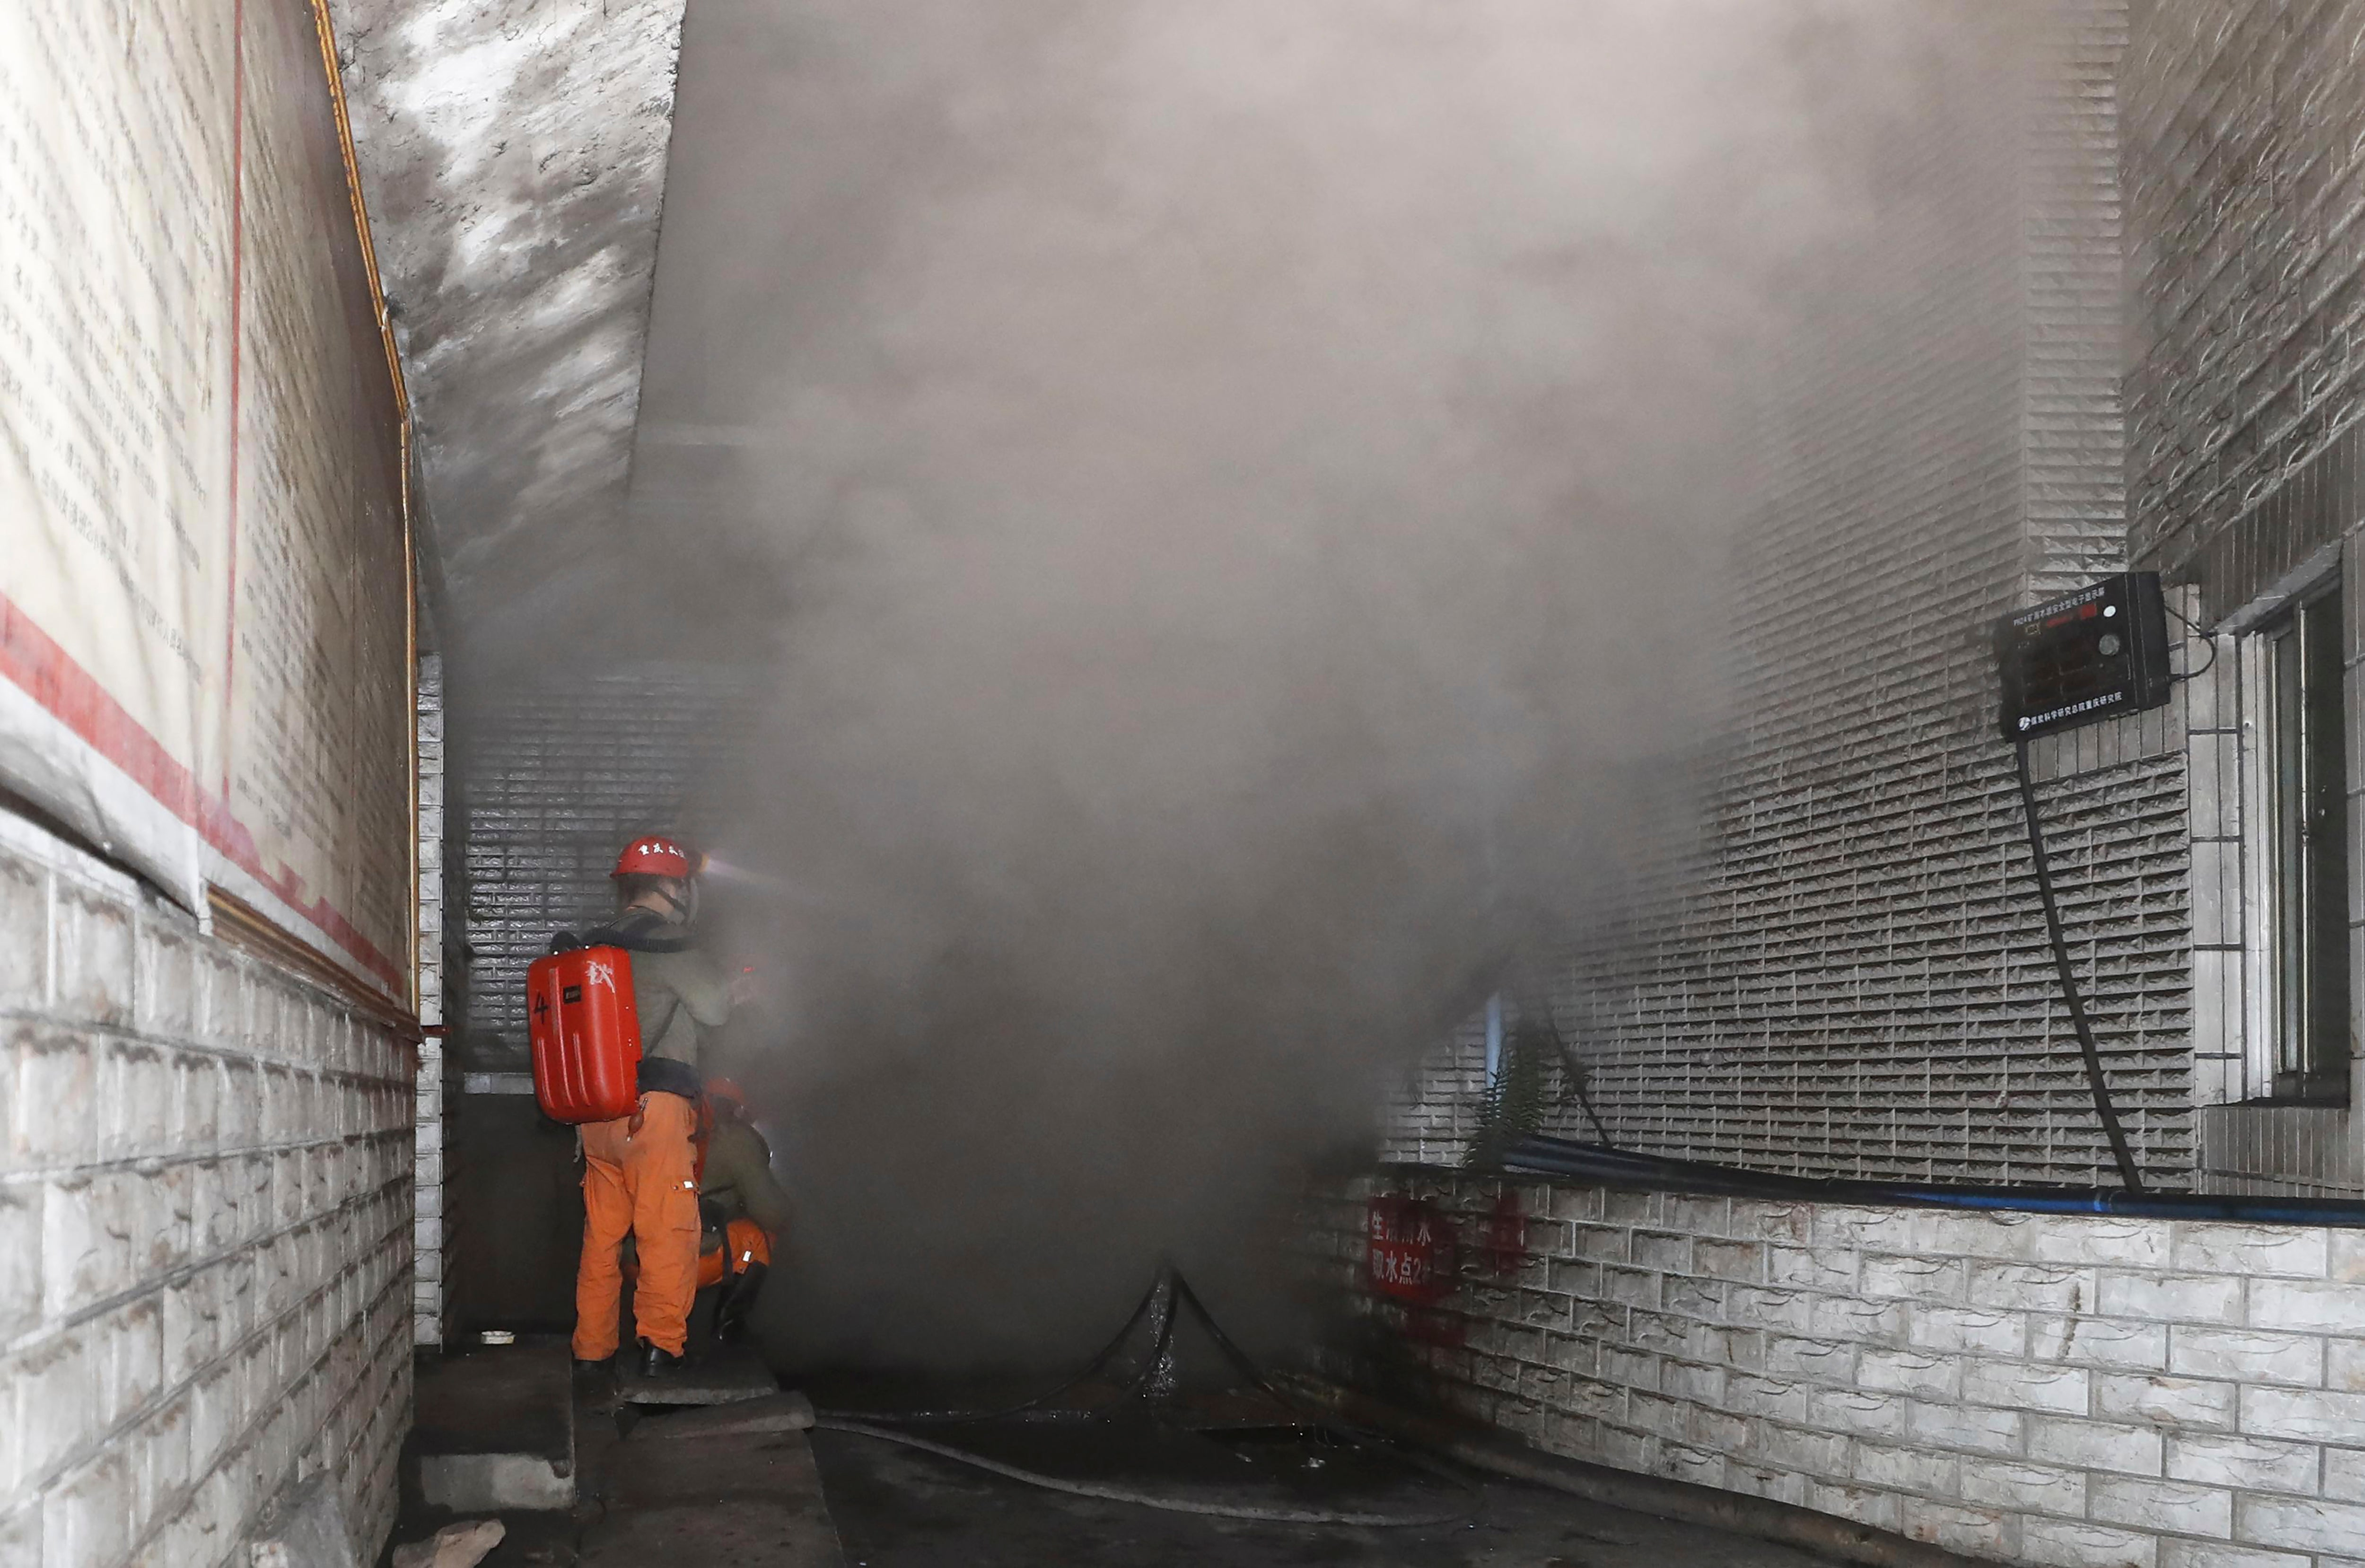 At least 18 coal miners killed in carbon monoxide disaster in China - independent